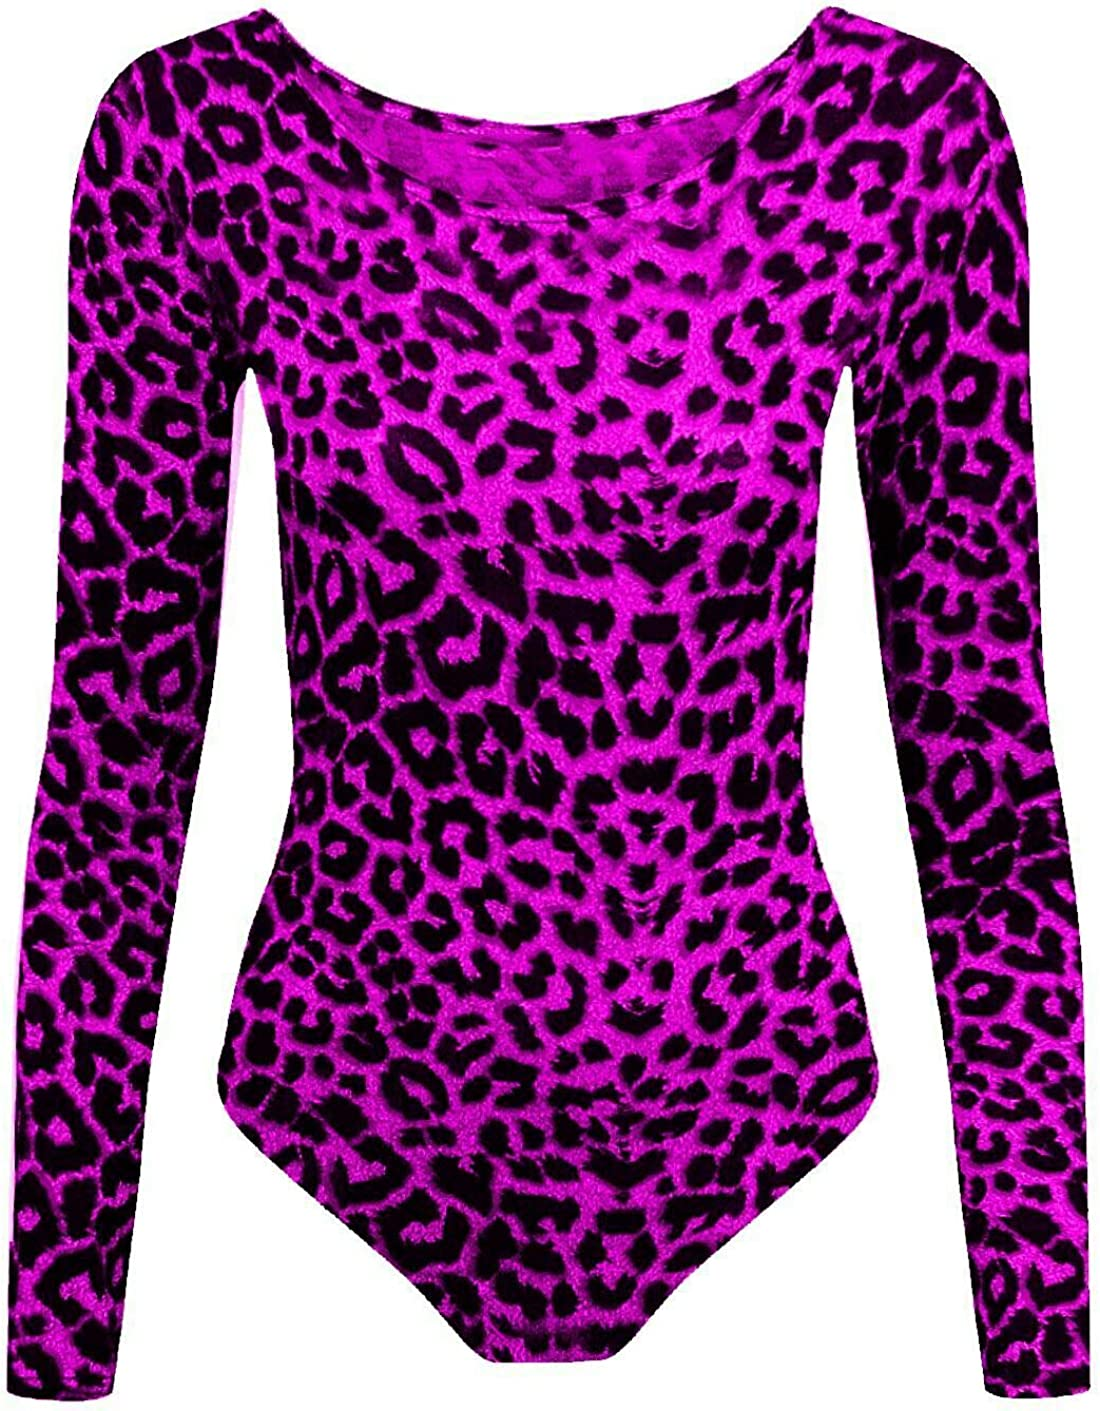 Loxdonz Girls Bodysuit Leotard Top Toddler Dance Bodycon Ballet Jumpsuit Gymnastics Romper